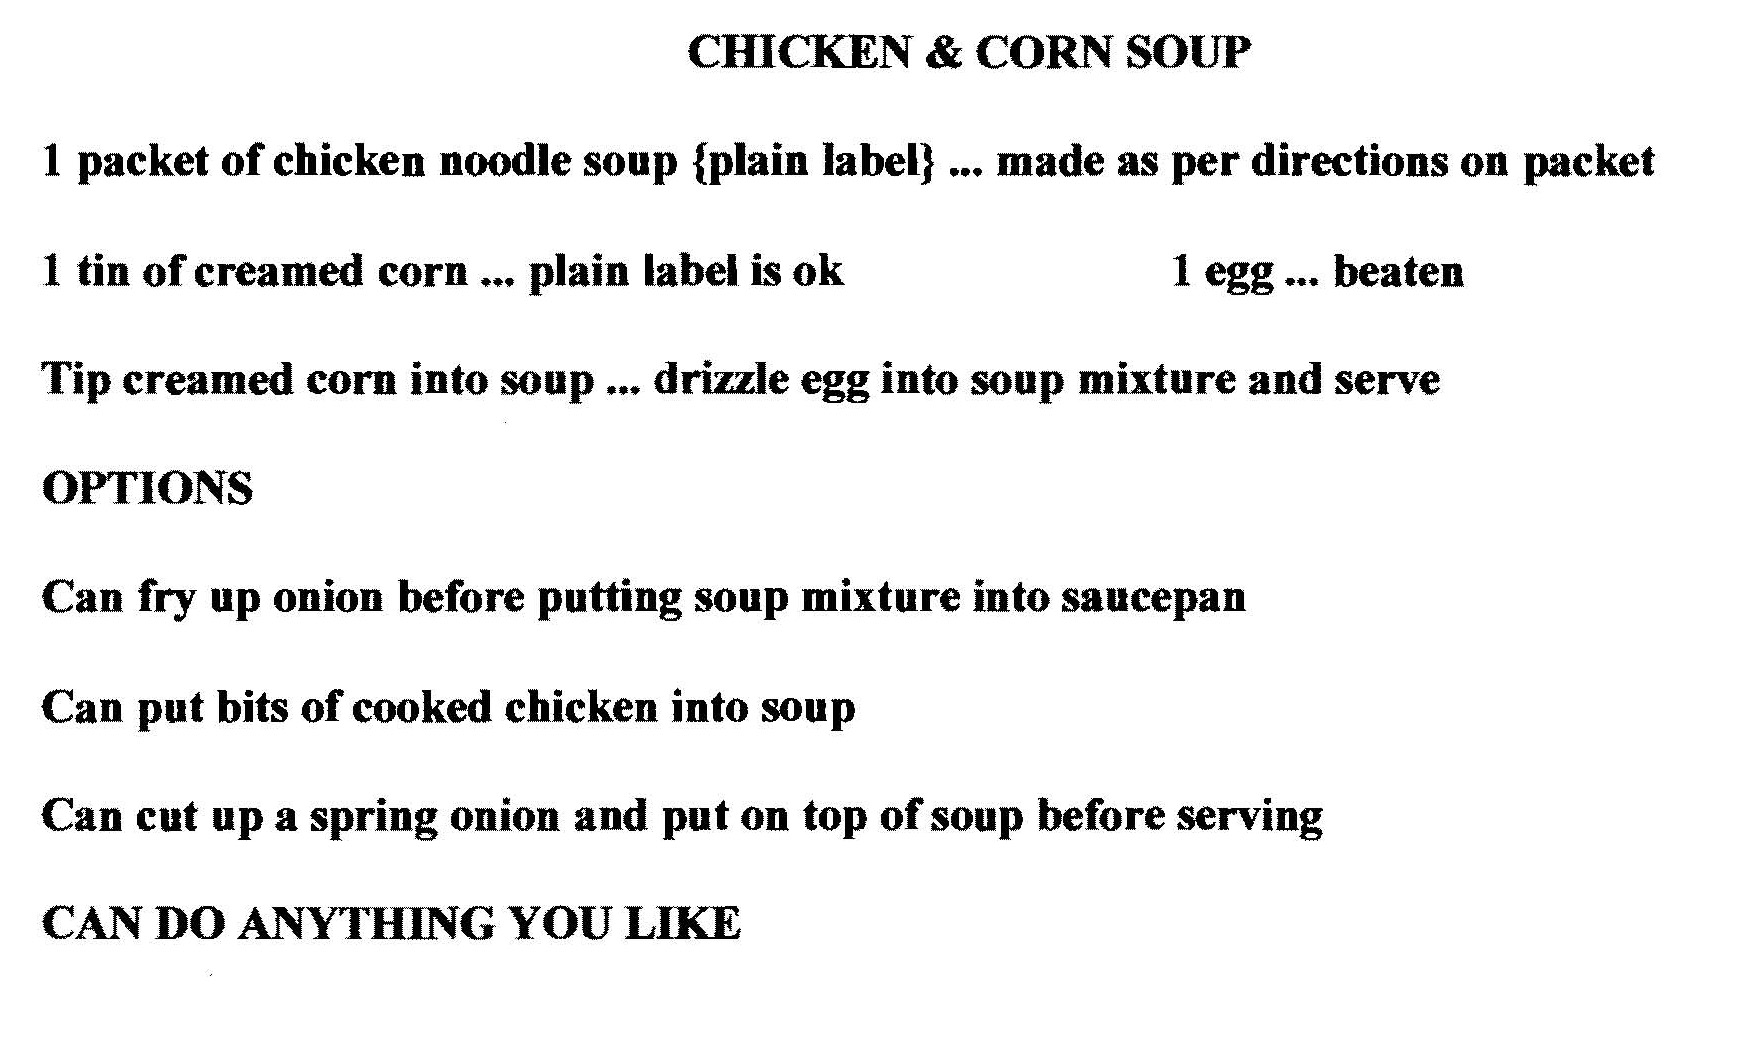 Chicken & Sweet Corn Soup How To Make